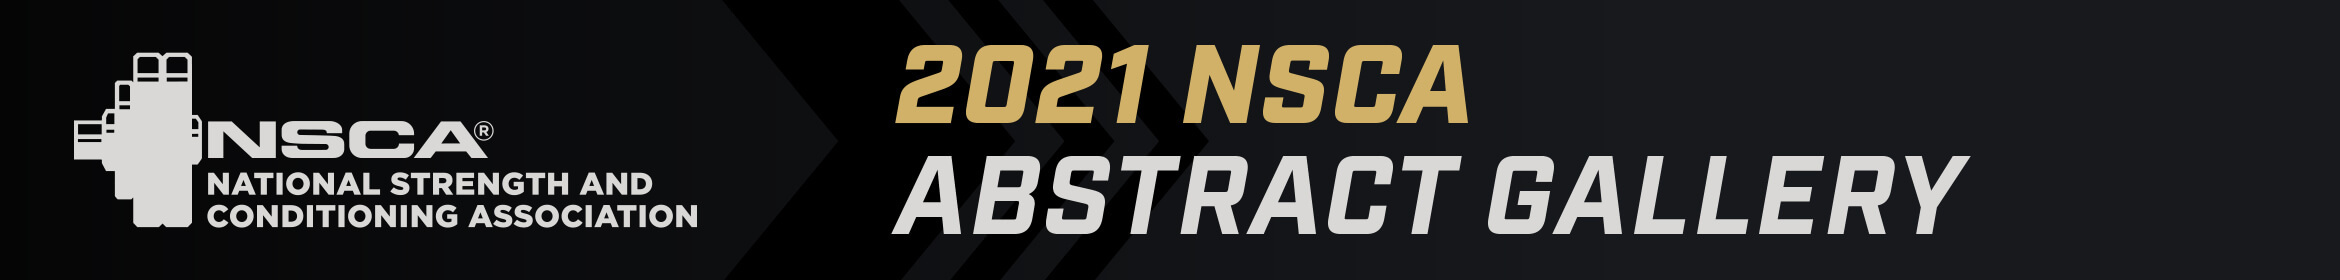 NSCA 2021 Abstracts Main banner